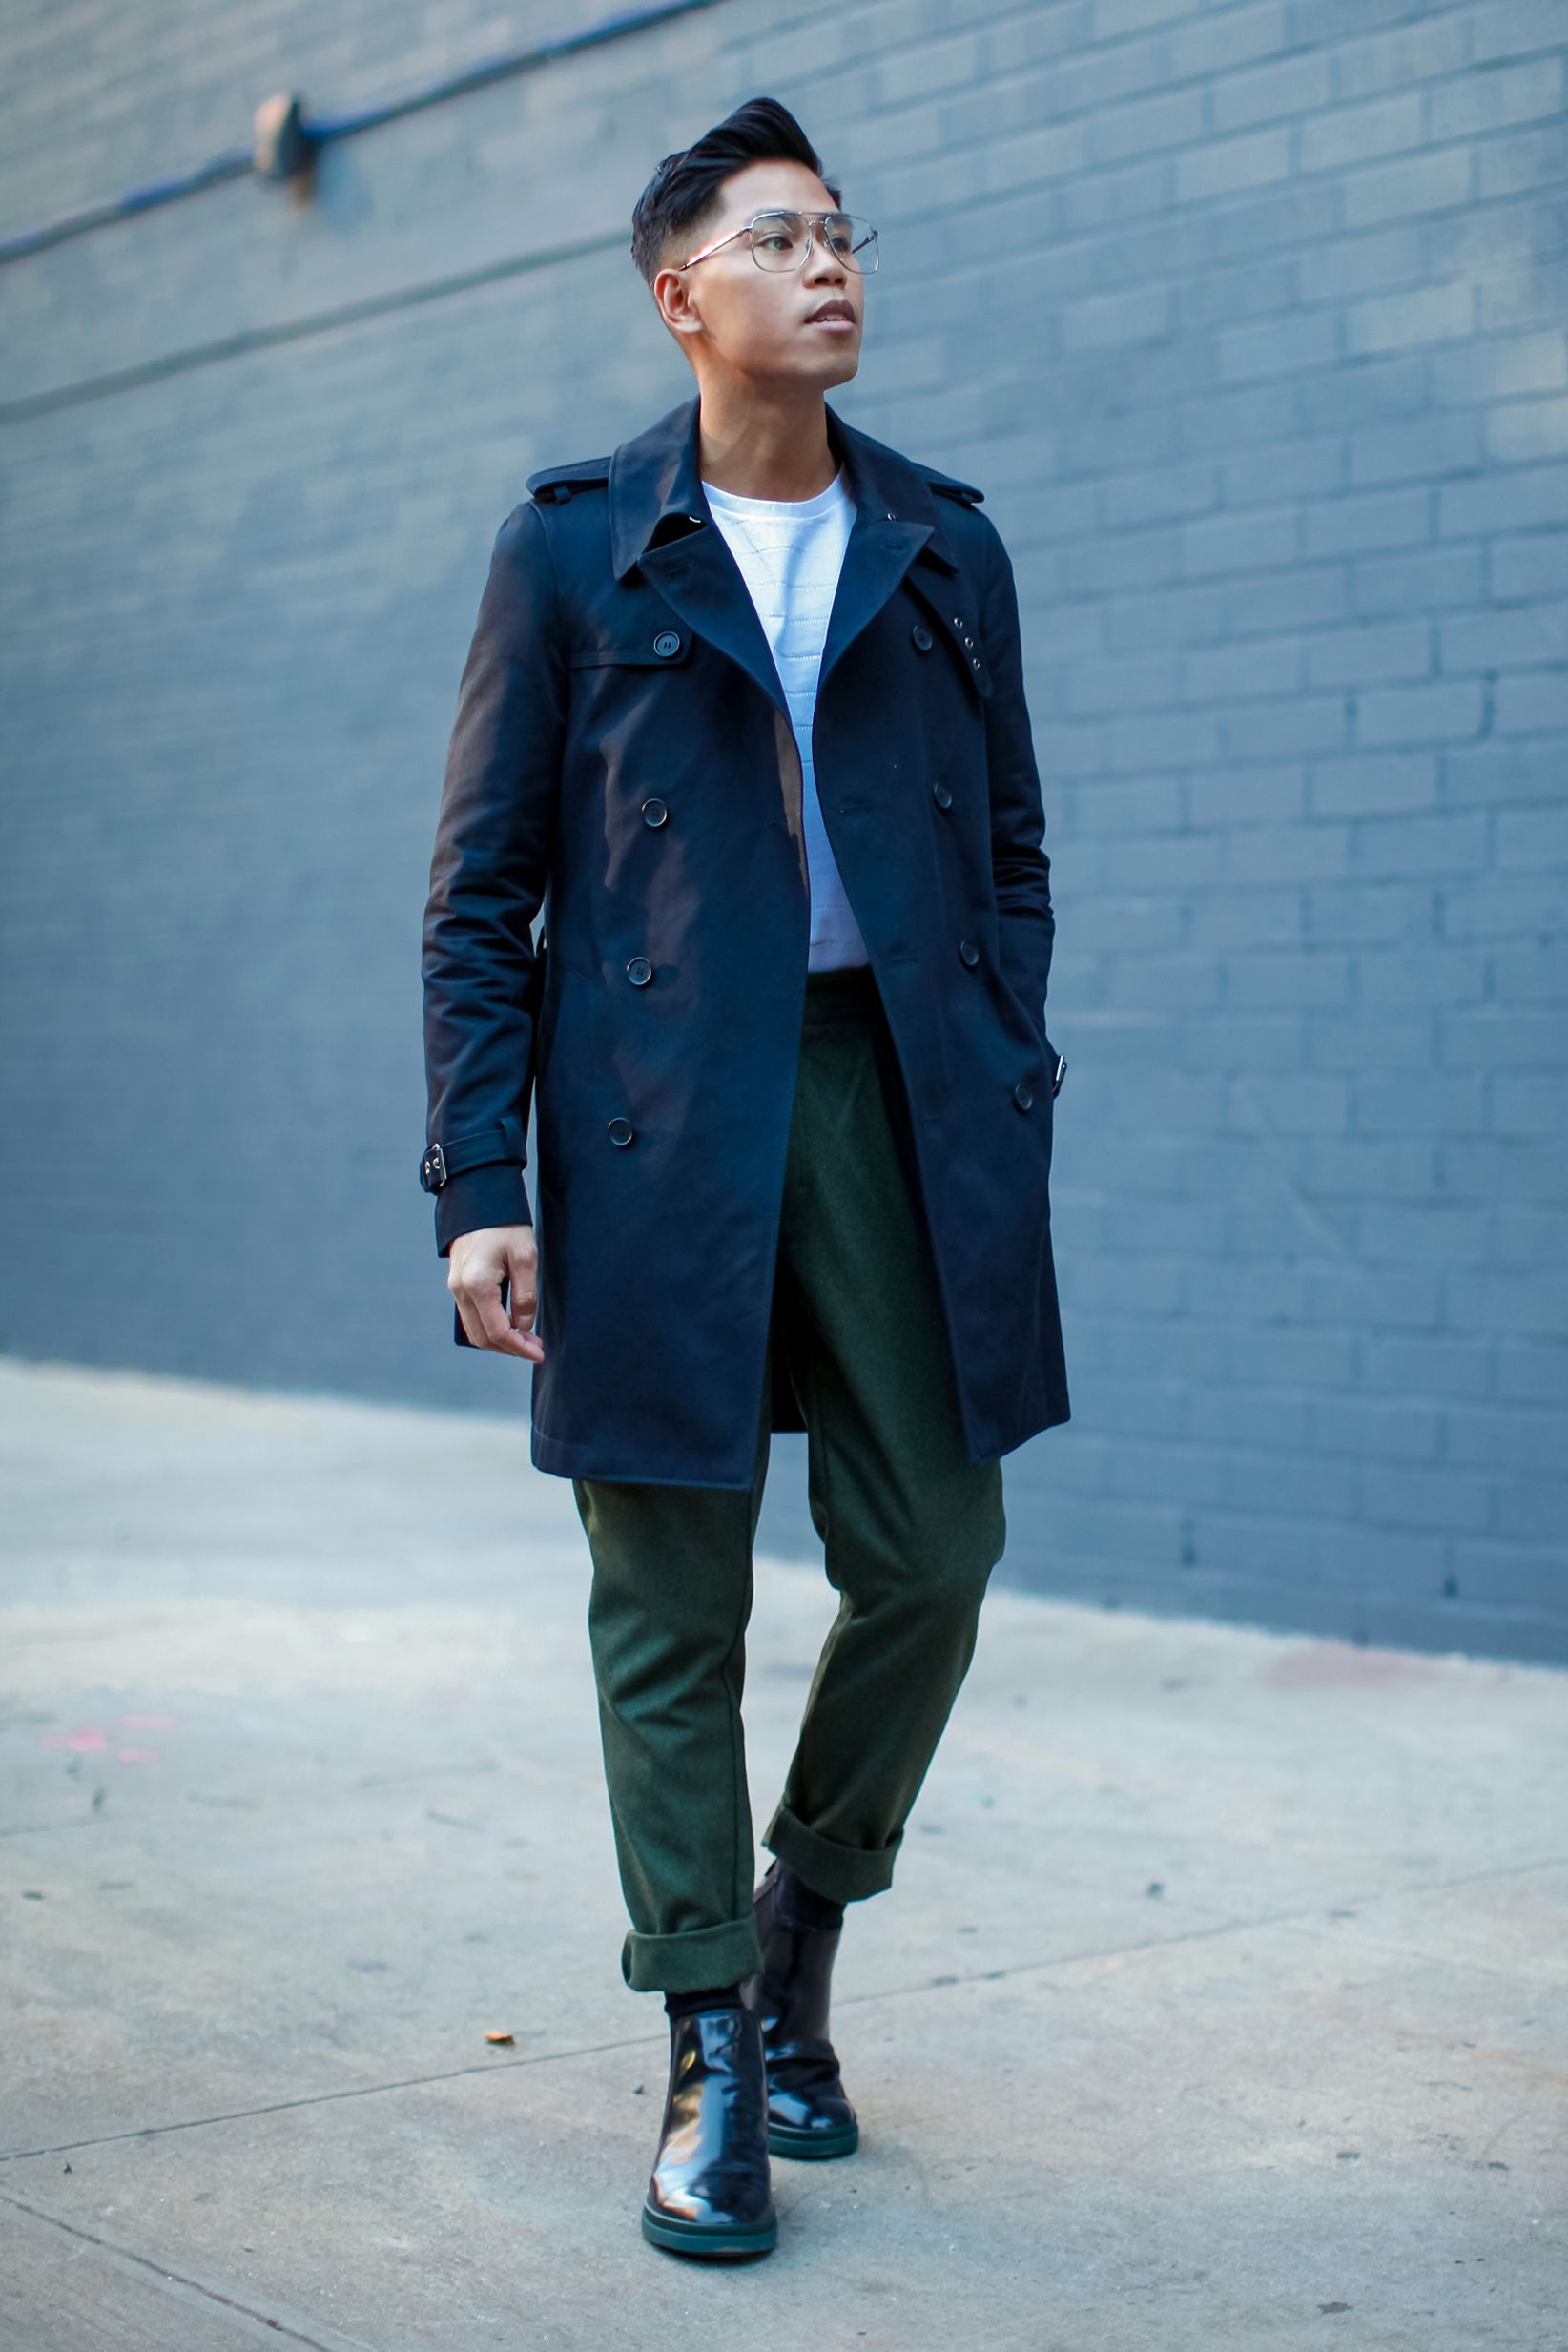 mens trench coat street style | Trench coat men, Blue trench